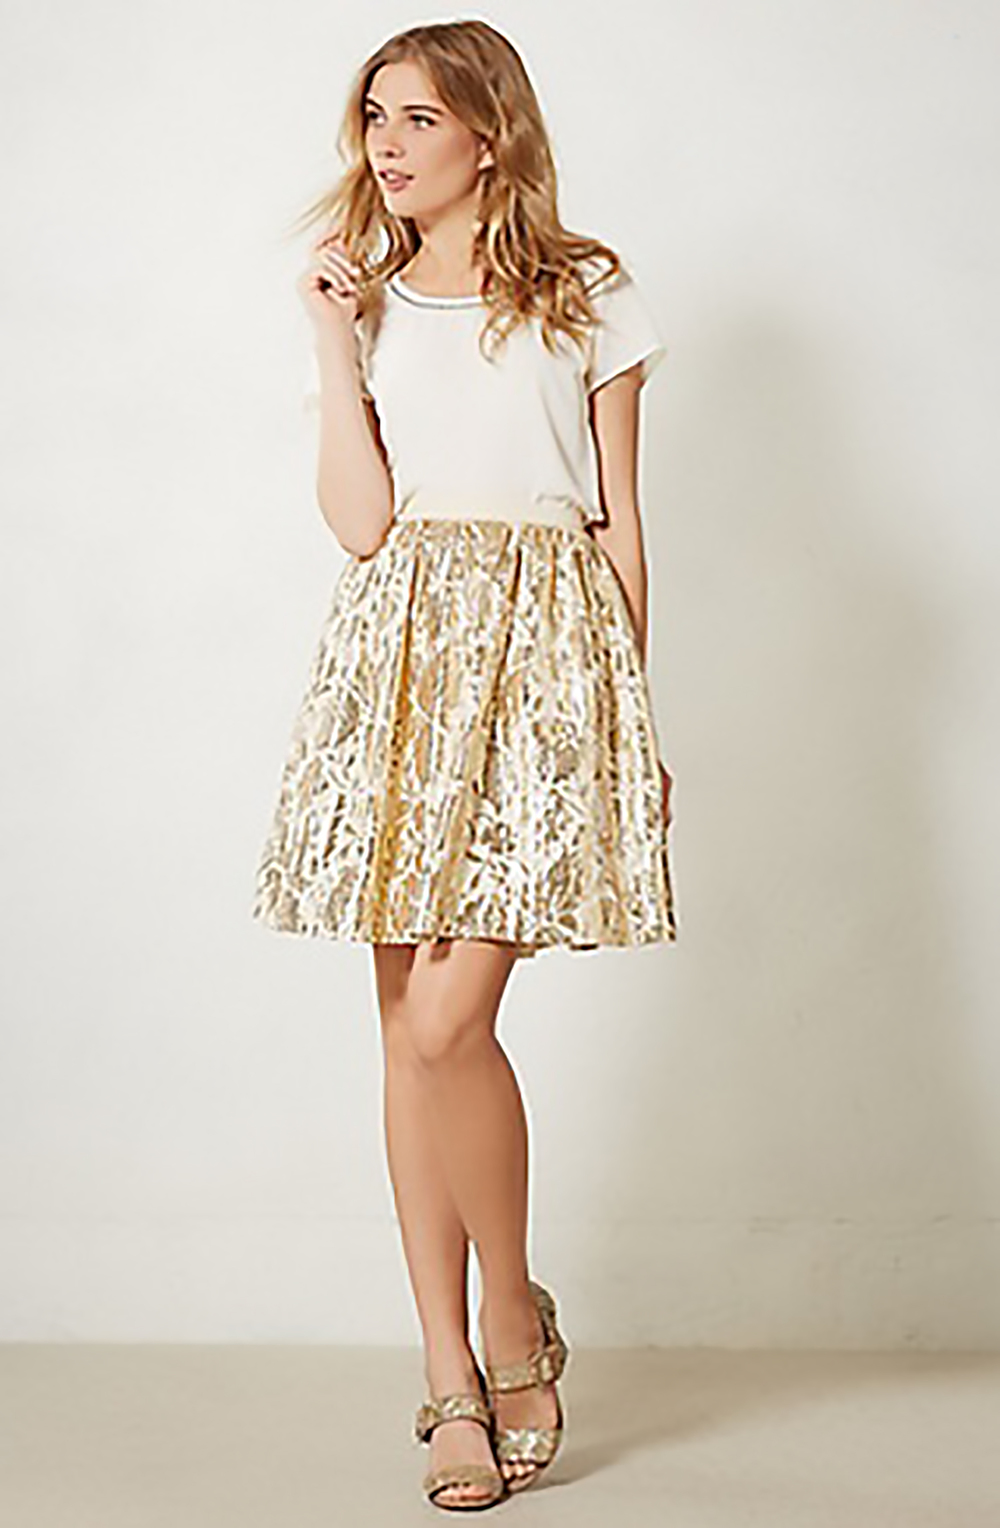 anthropologie galilie skirt holiday separates 1500.jpg